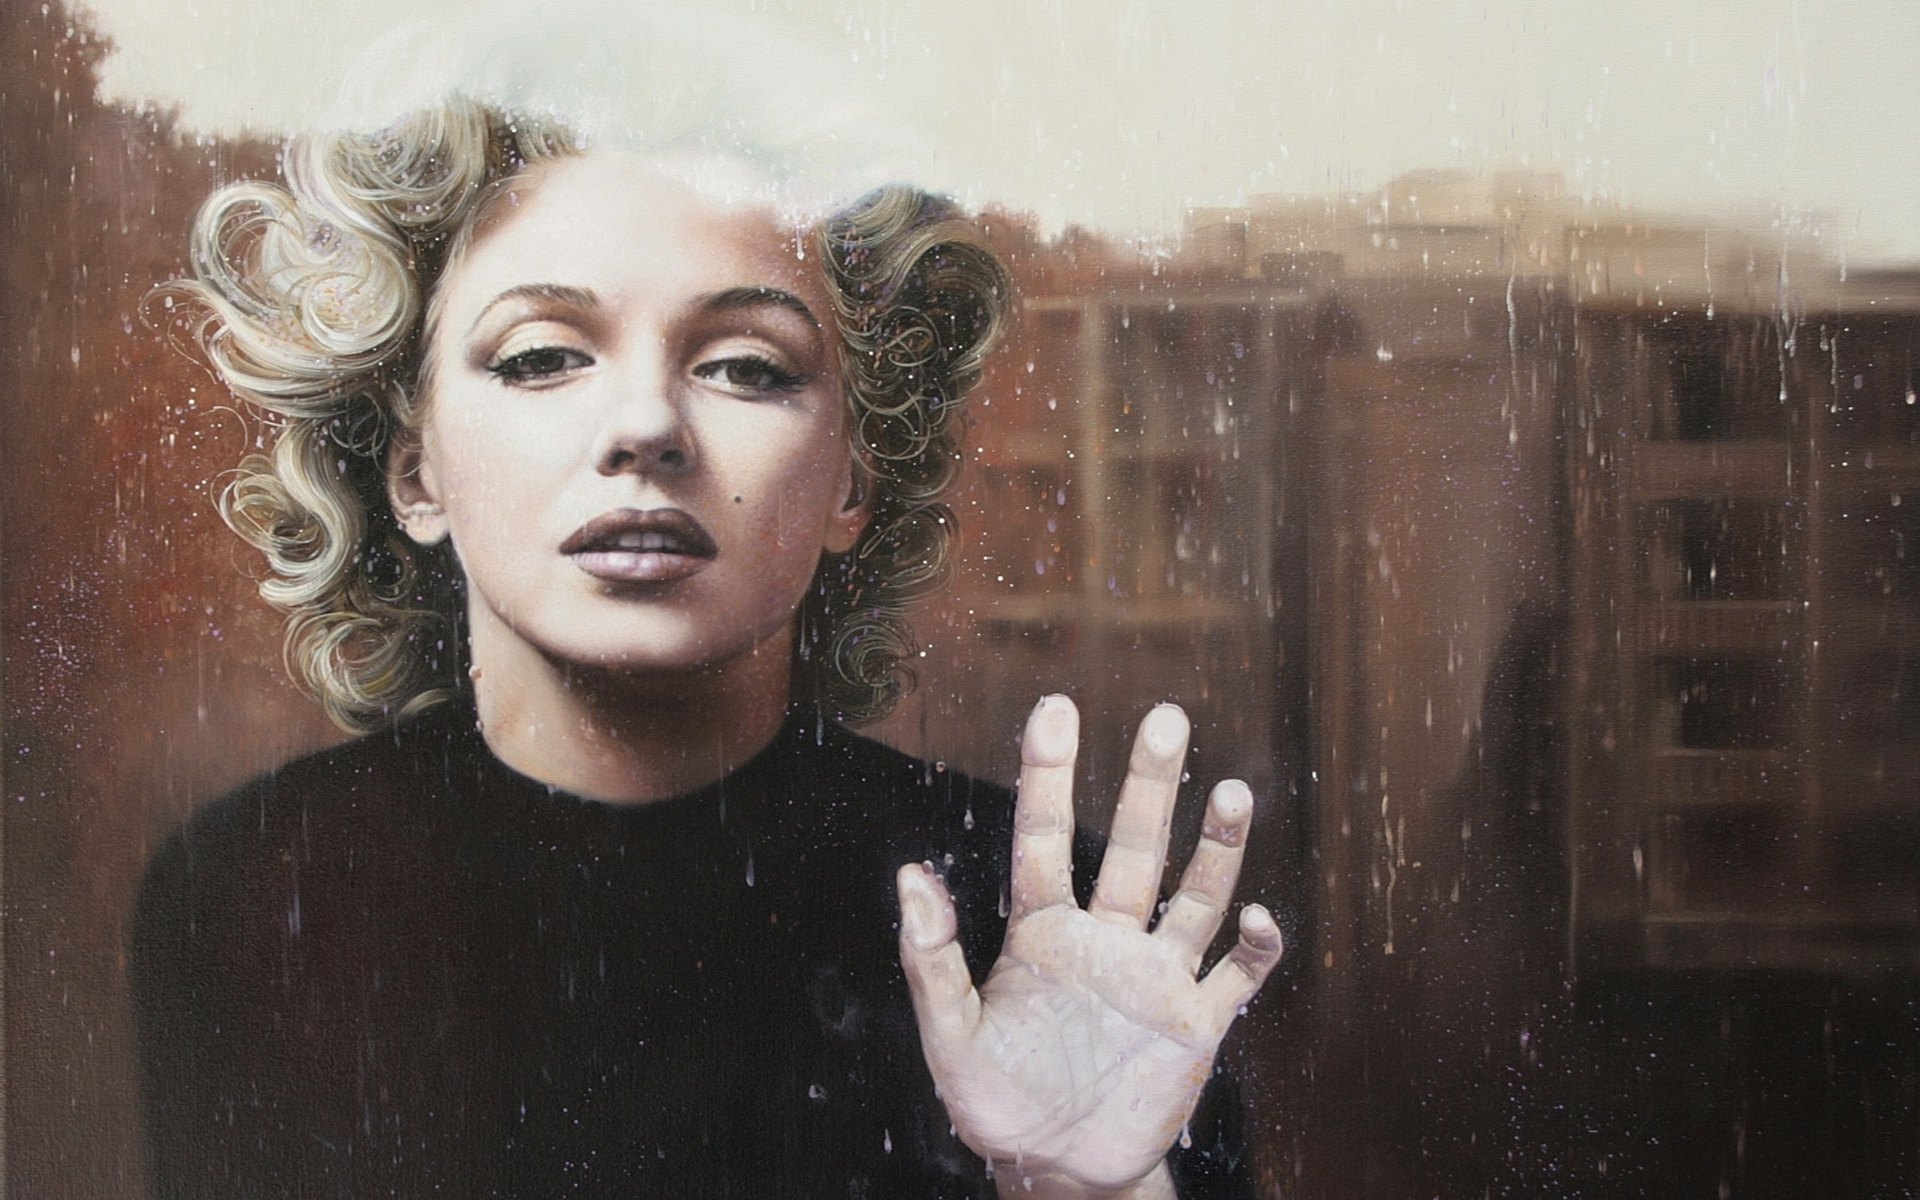 Citaten Marilyn Monroe Hd : Marilyn monroe wallpapers high resolution and quality download